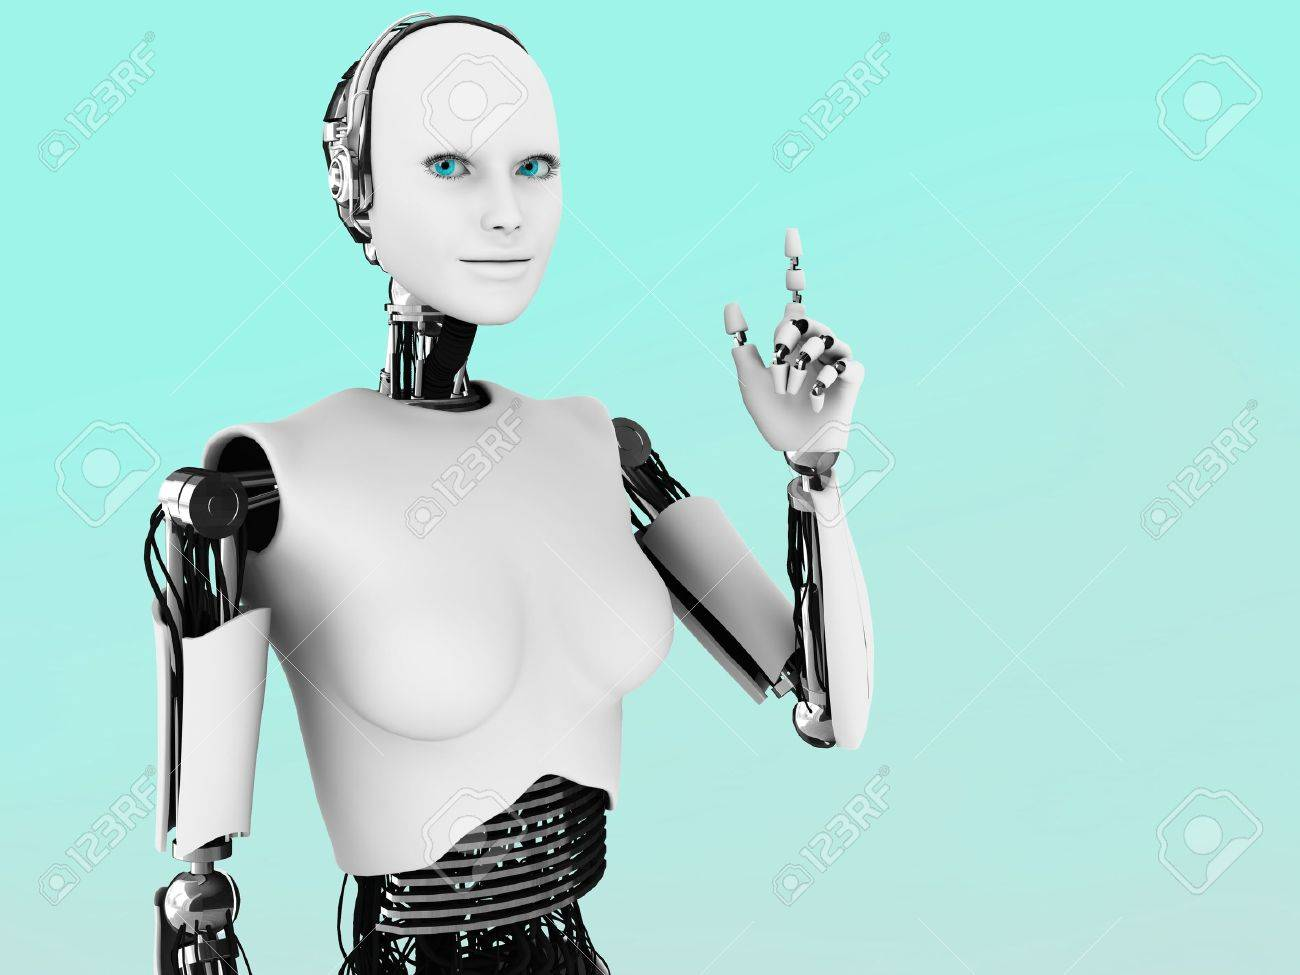 A robot woman holding her hand up with her index finger extended, like she is having an idea. Stock Photo - 12323272